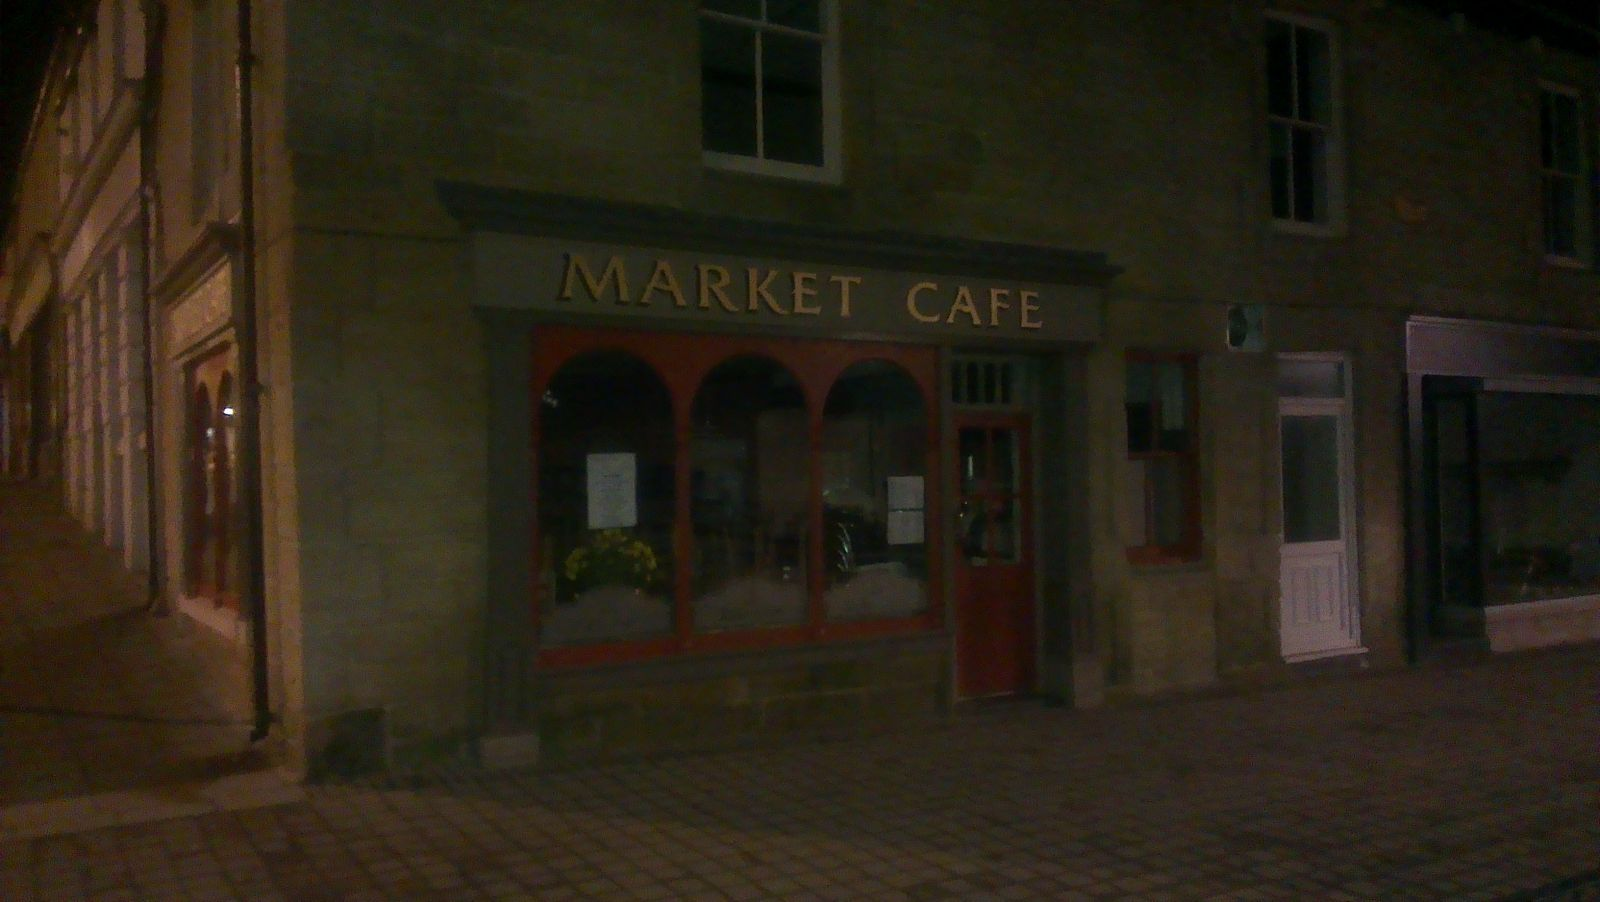 Market Place café finished